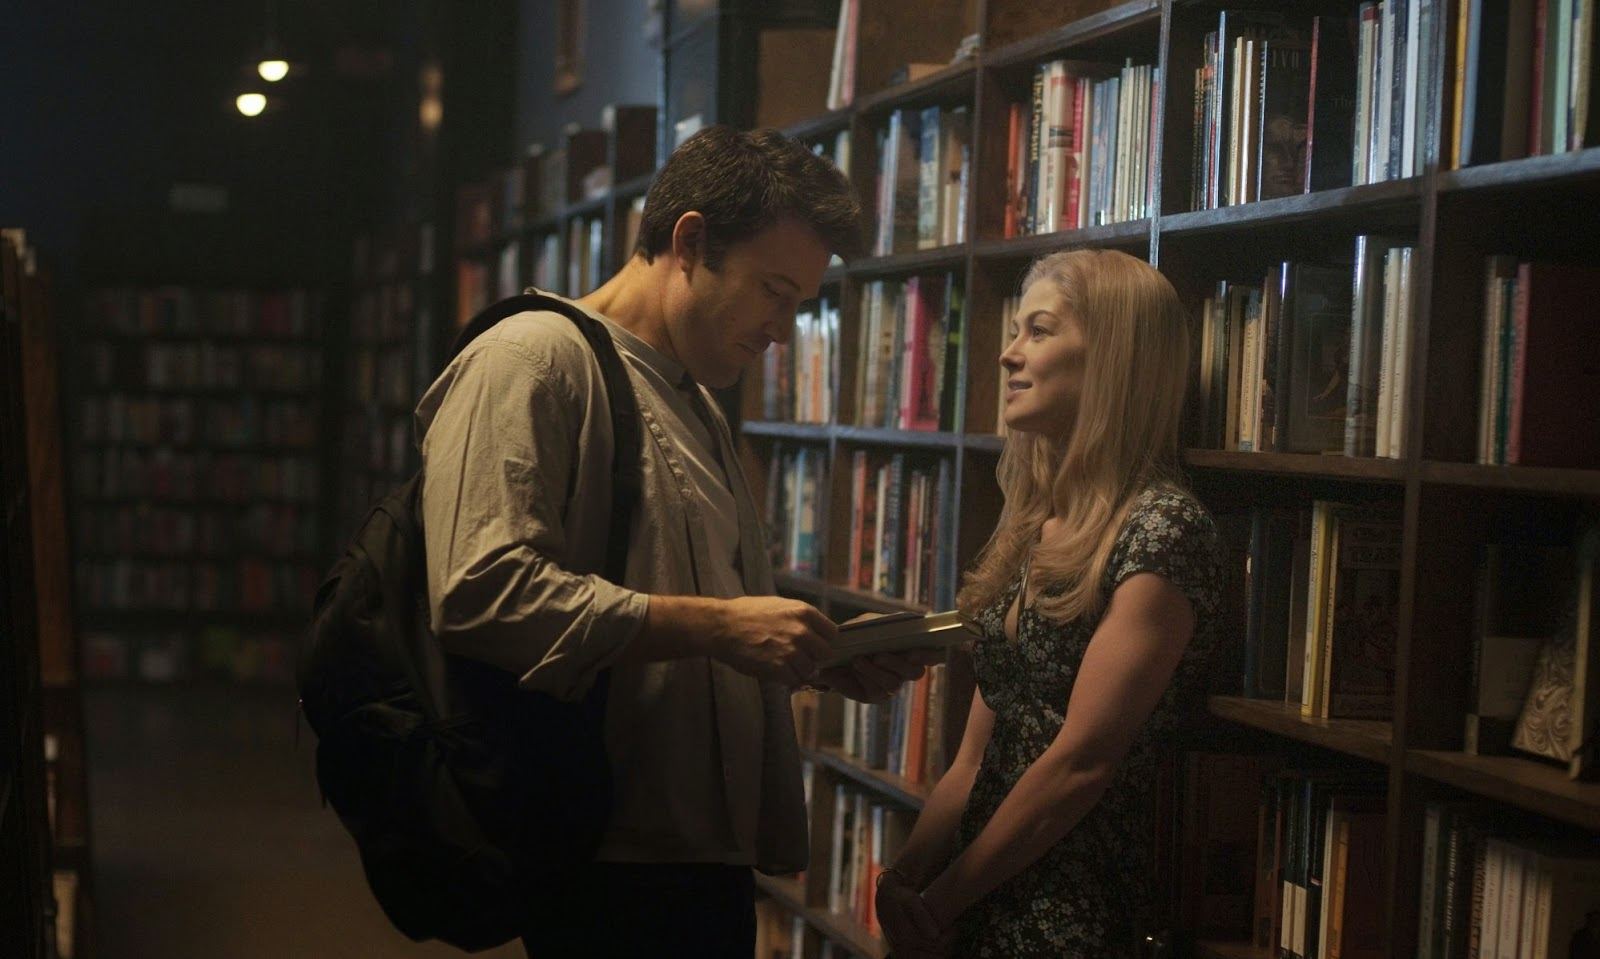 Hateship Friendship Courtship Loveship Marriage And Then A Lot More Hateship Gone Girl